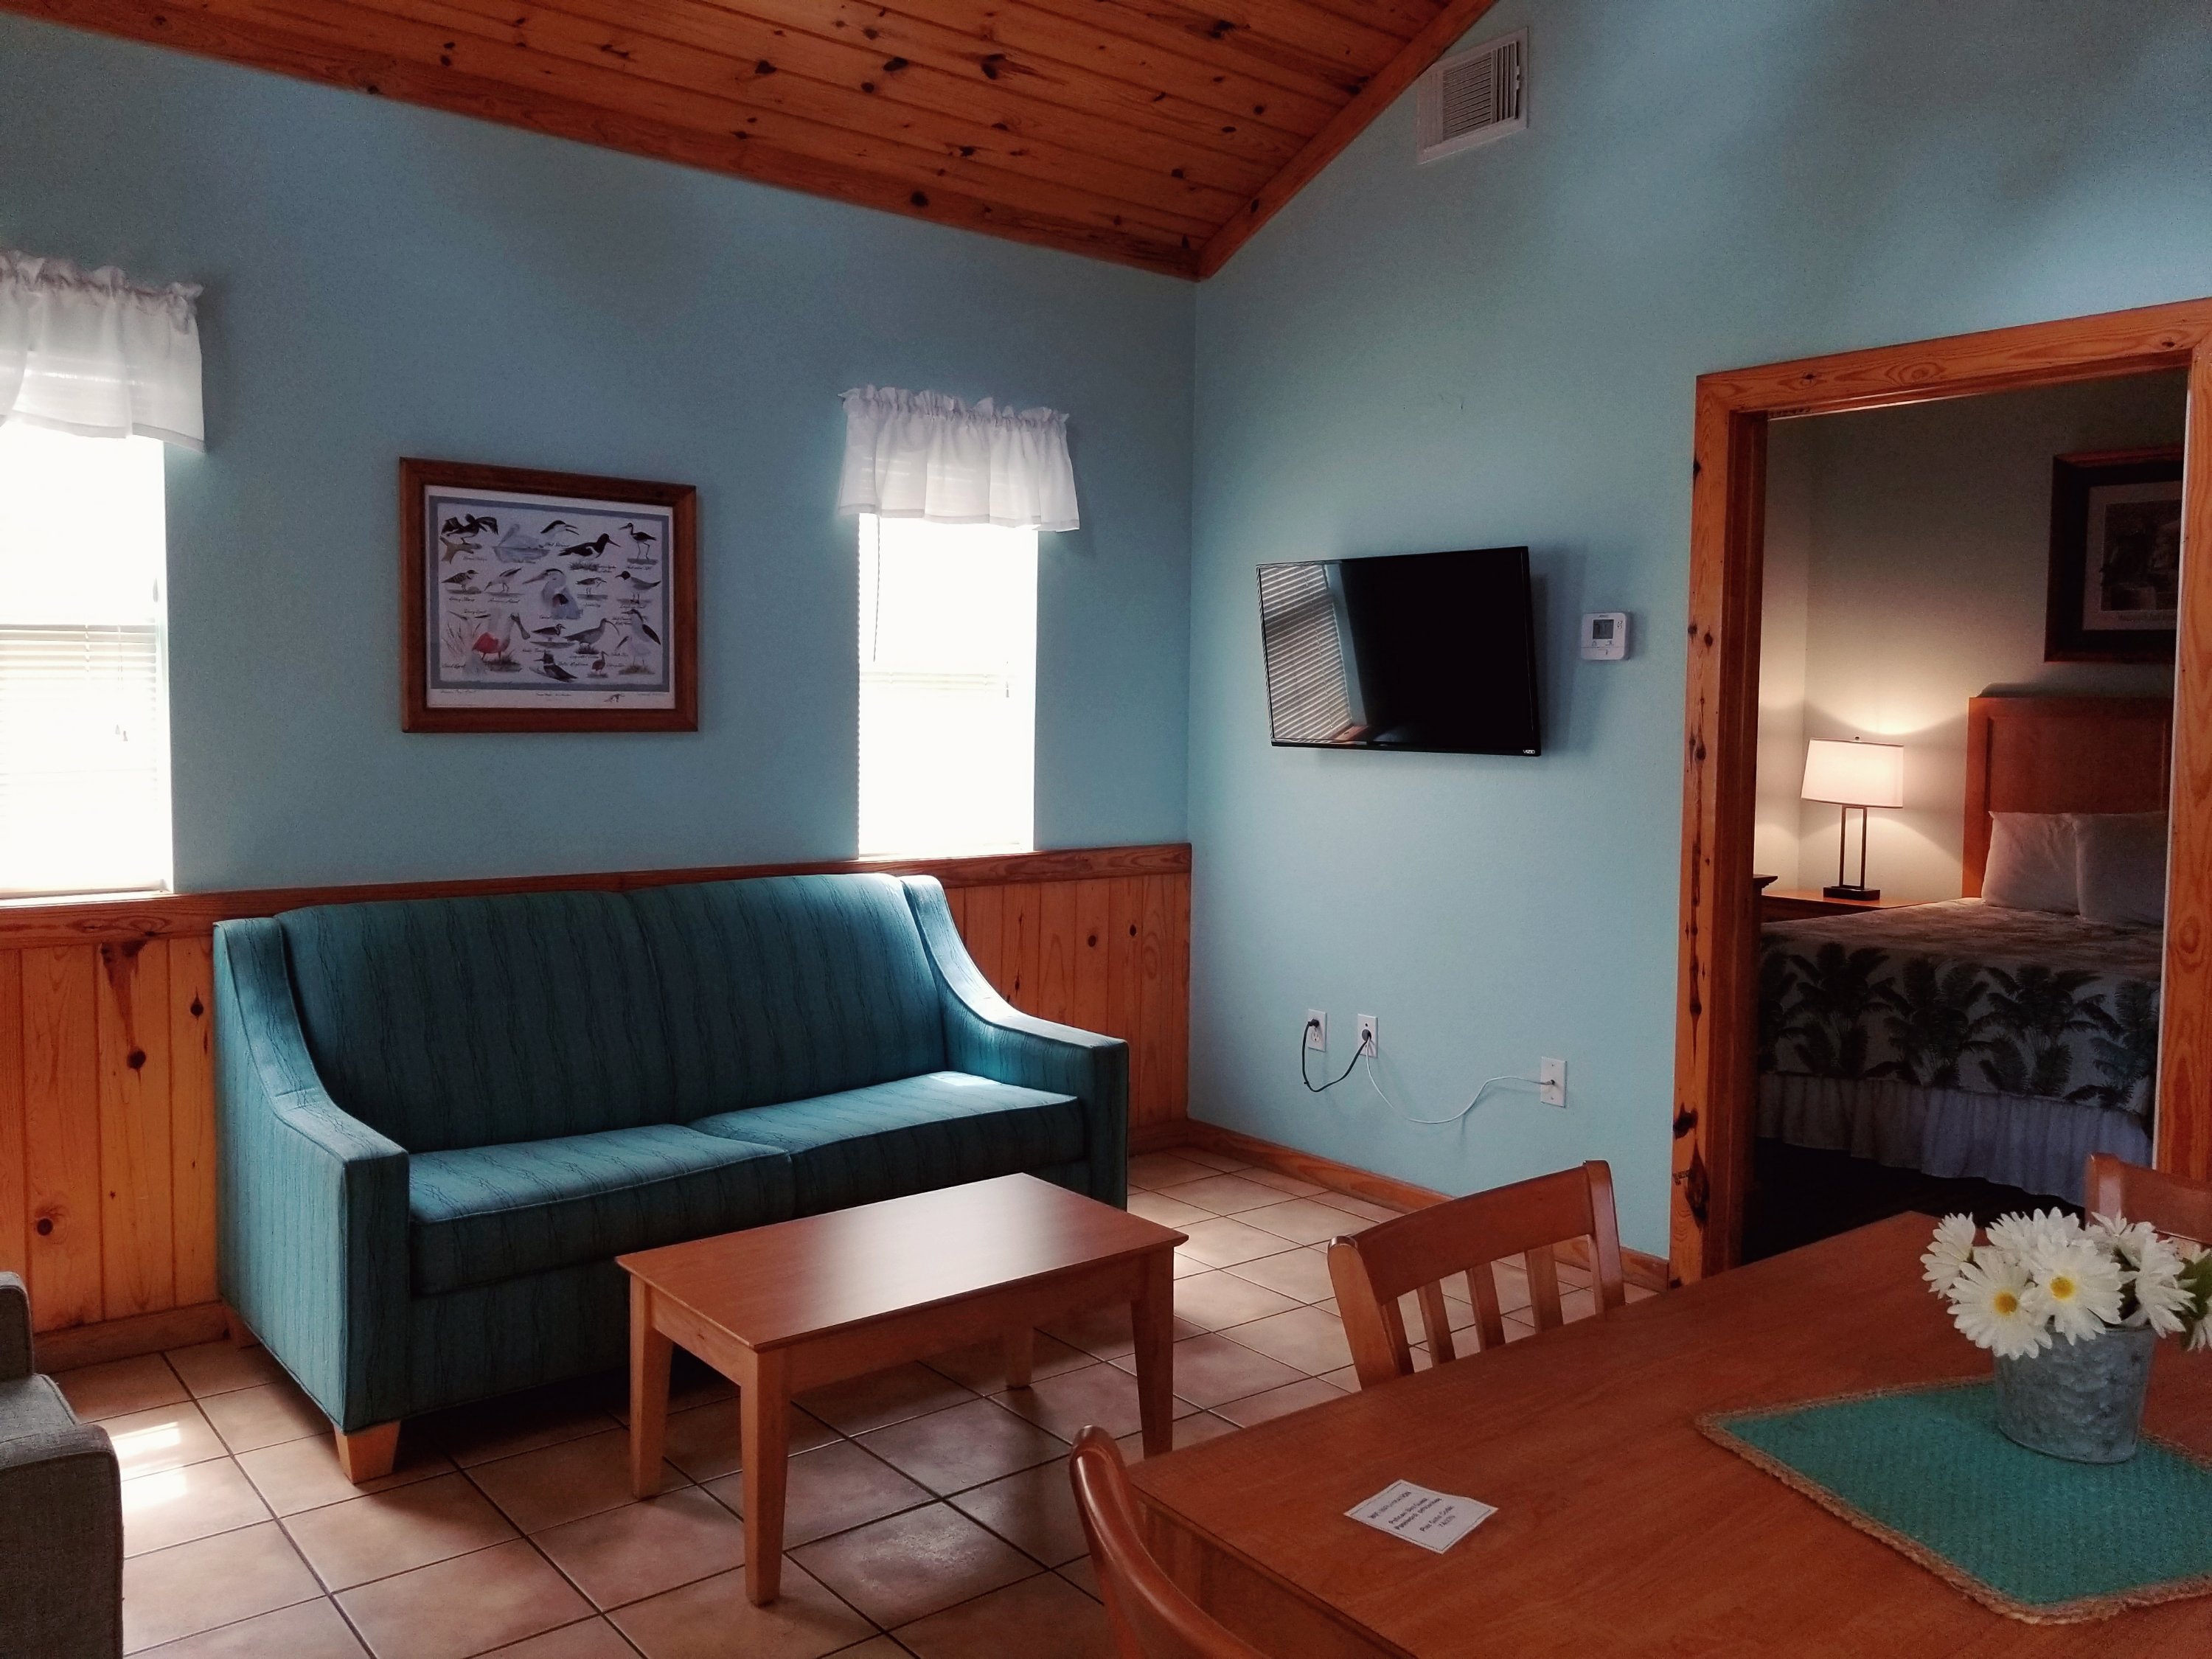 The Pelican Bay Resort in Rockport Texas: Mini Suites, Lodge, Cabins near the beach. Take a look inside the cottage.